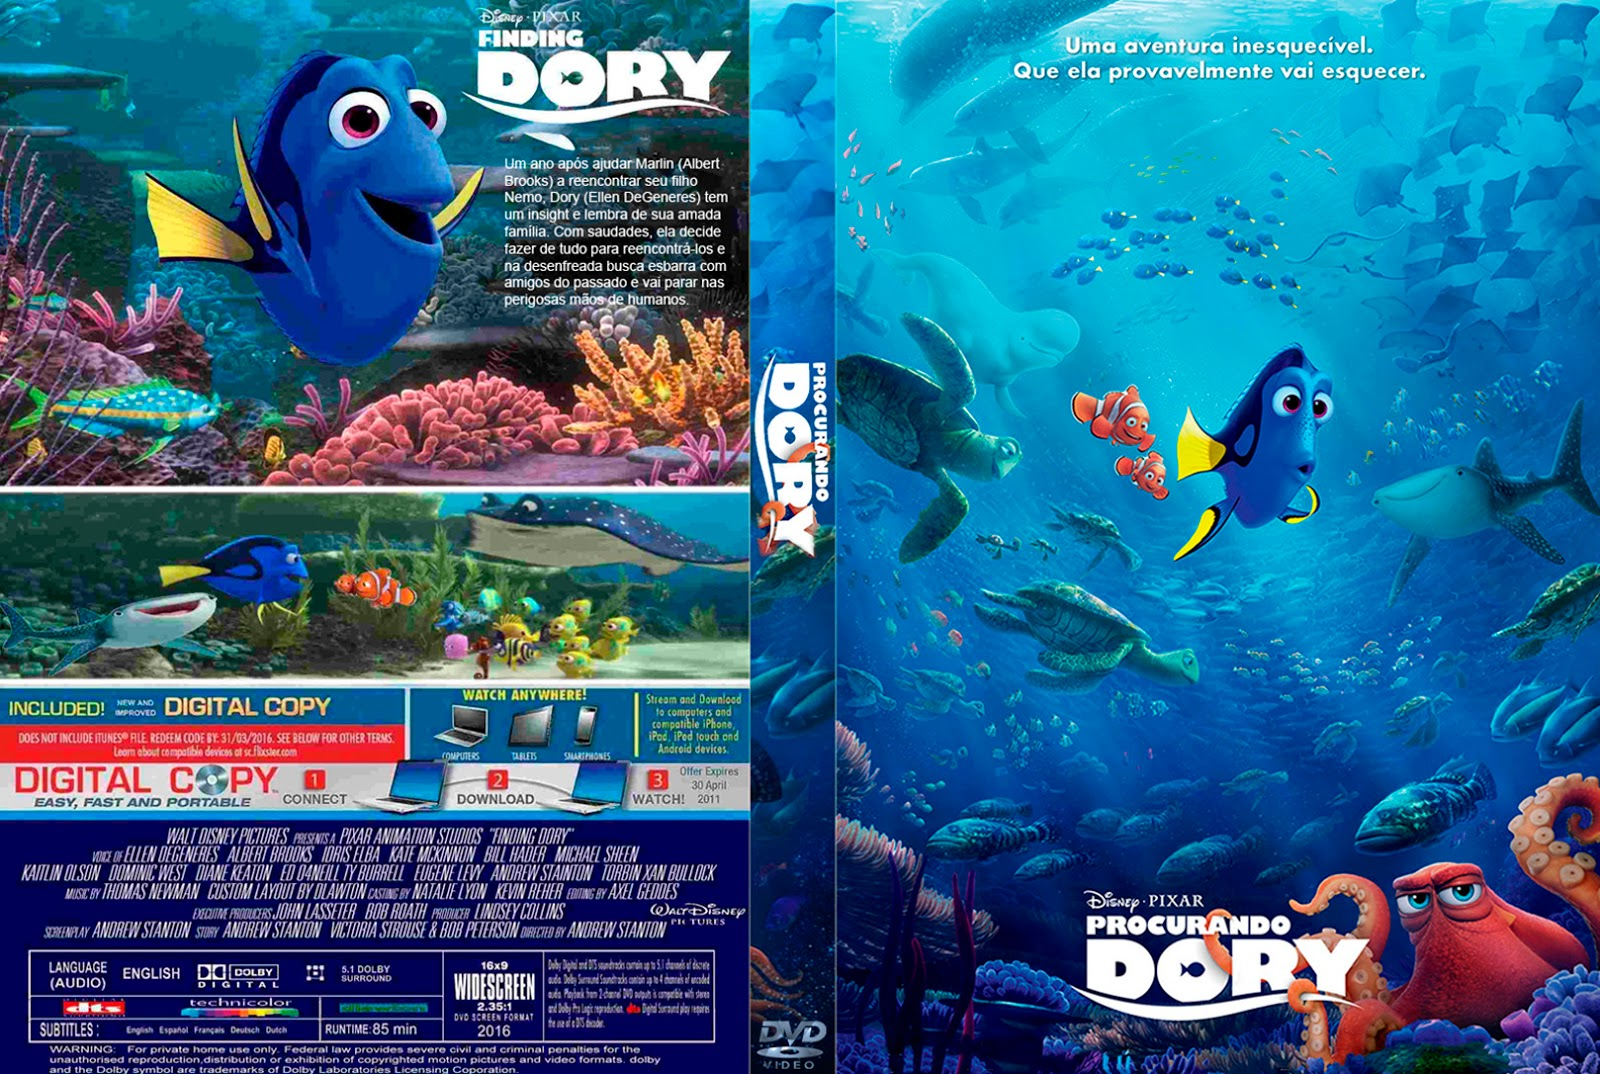 Download Procurando Dory BDRip 2016 Download Procurando Dory BDRip 2016 Procurando 2BDory 2B  2BCAPA 2B2